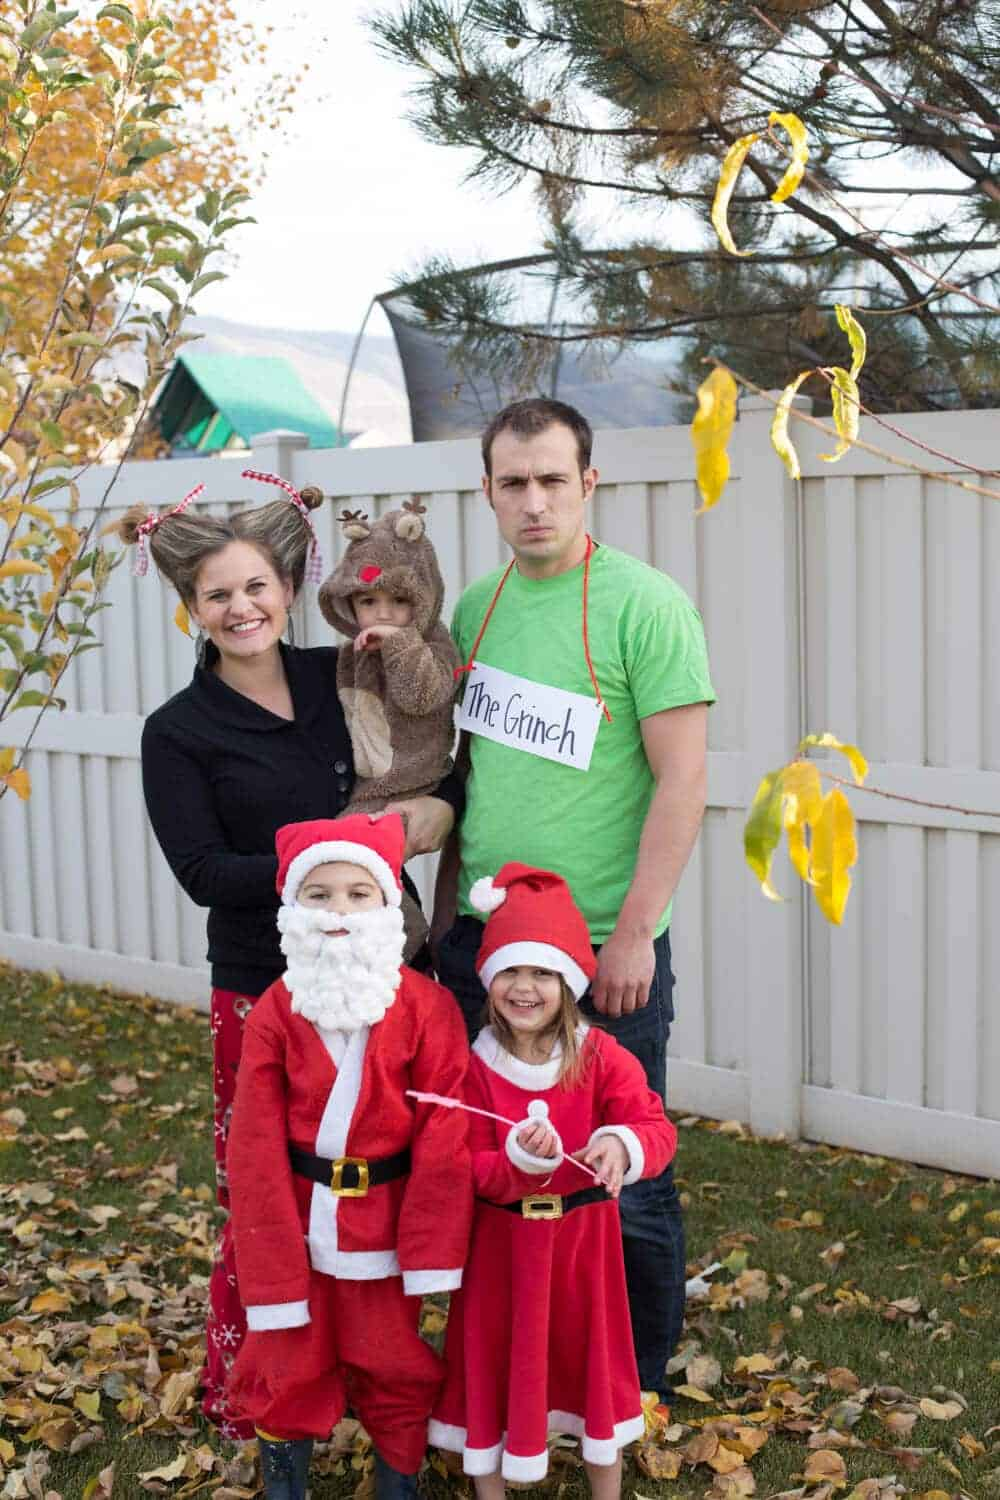 Christmas Halloween Costume Ideas.6 Awesome Family Halloween Costume Ideas For Under 30